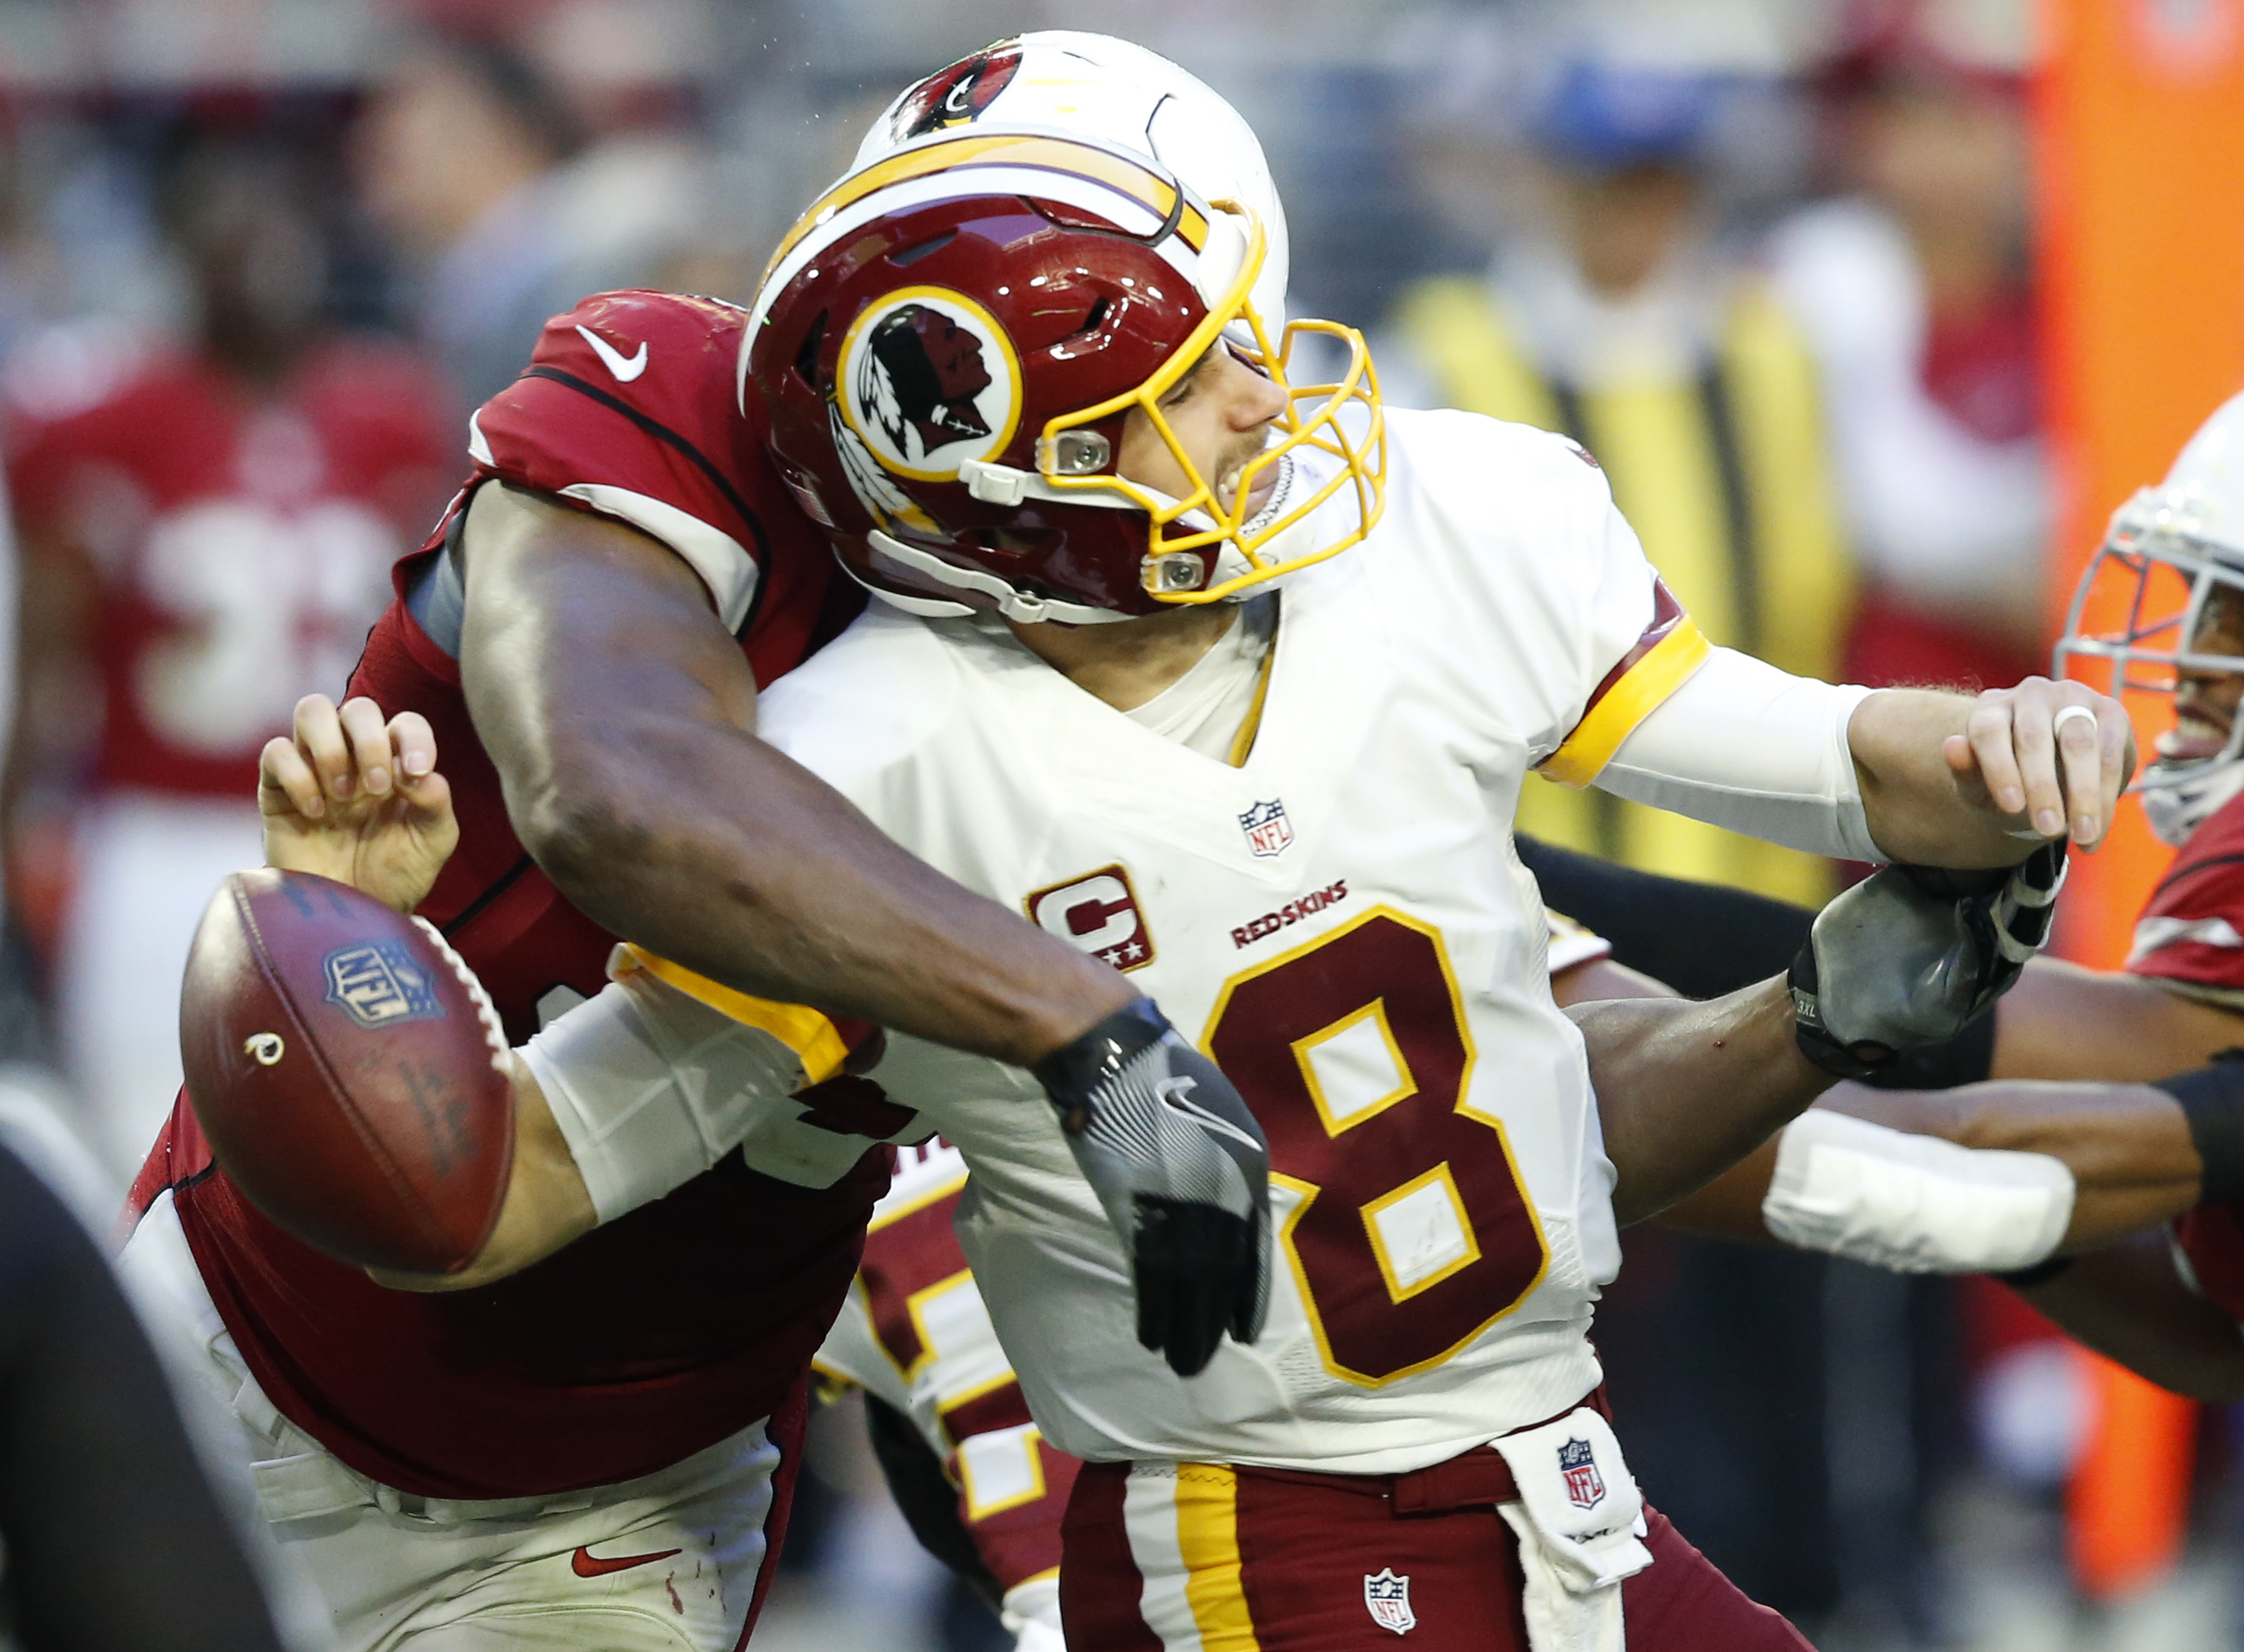 Arizona Cardinals defensive end Calais Campbell forces Washington Redskins quarterback Kirk Cousins (8) to fumble during the second half of an NFL football game, Sunday, Dec. 4, 2016, in Glendale, Ariz. The Cardinals recovered the ball on the play. (AP Ph